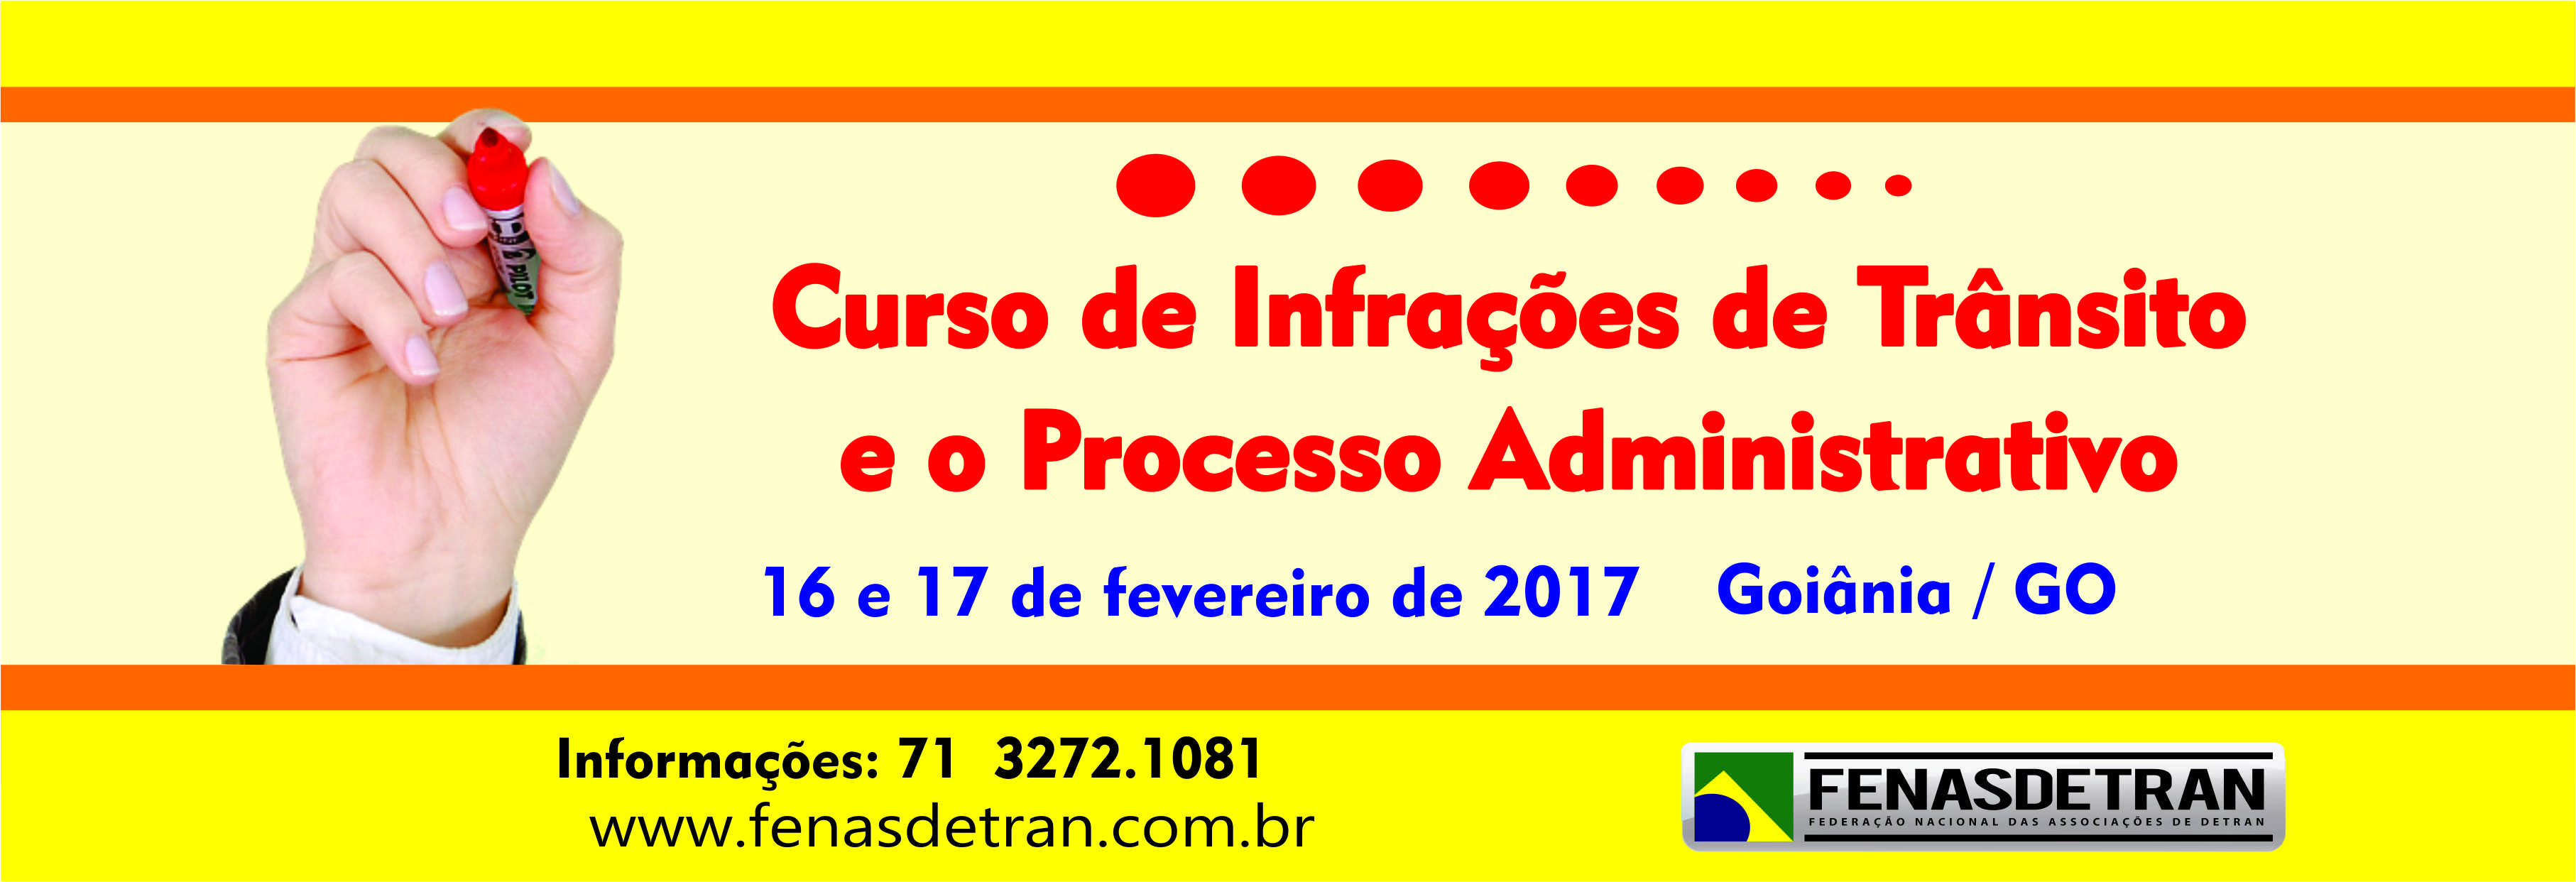 Infracoes A4 - Topo